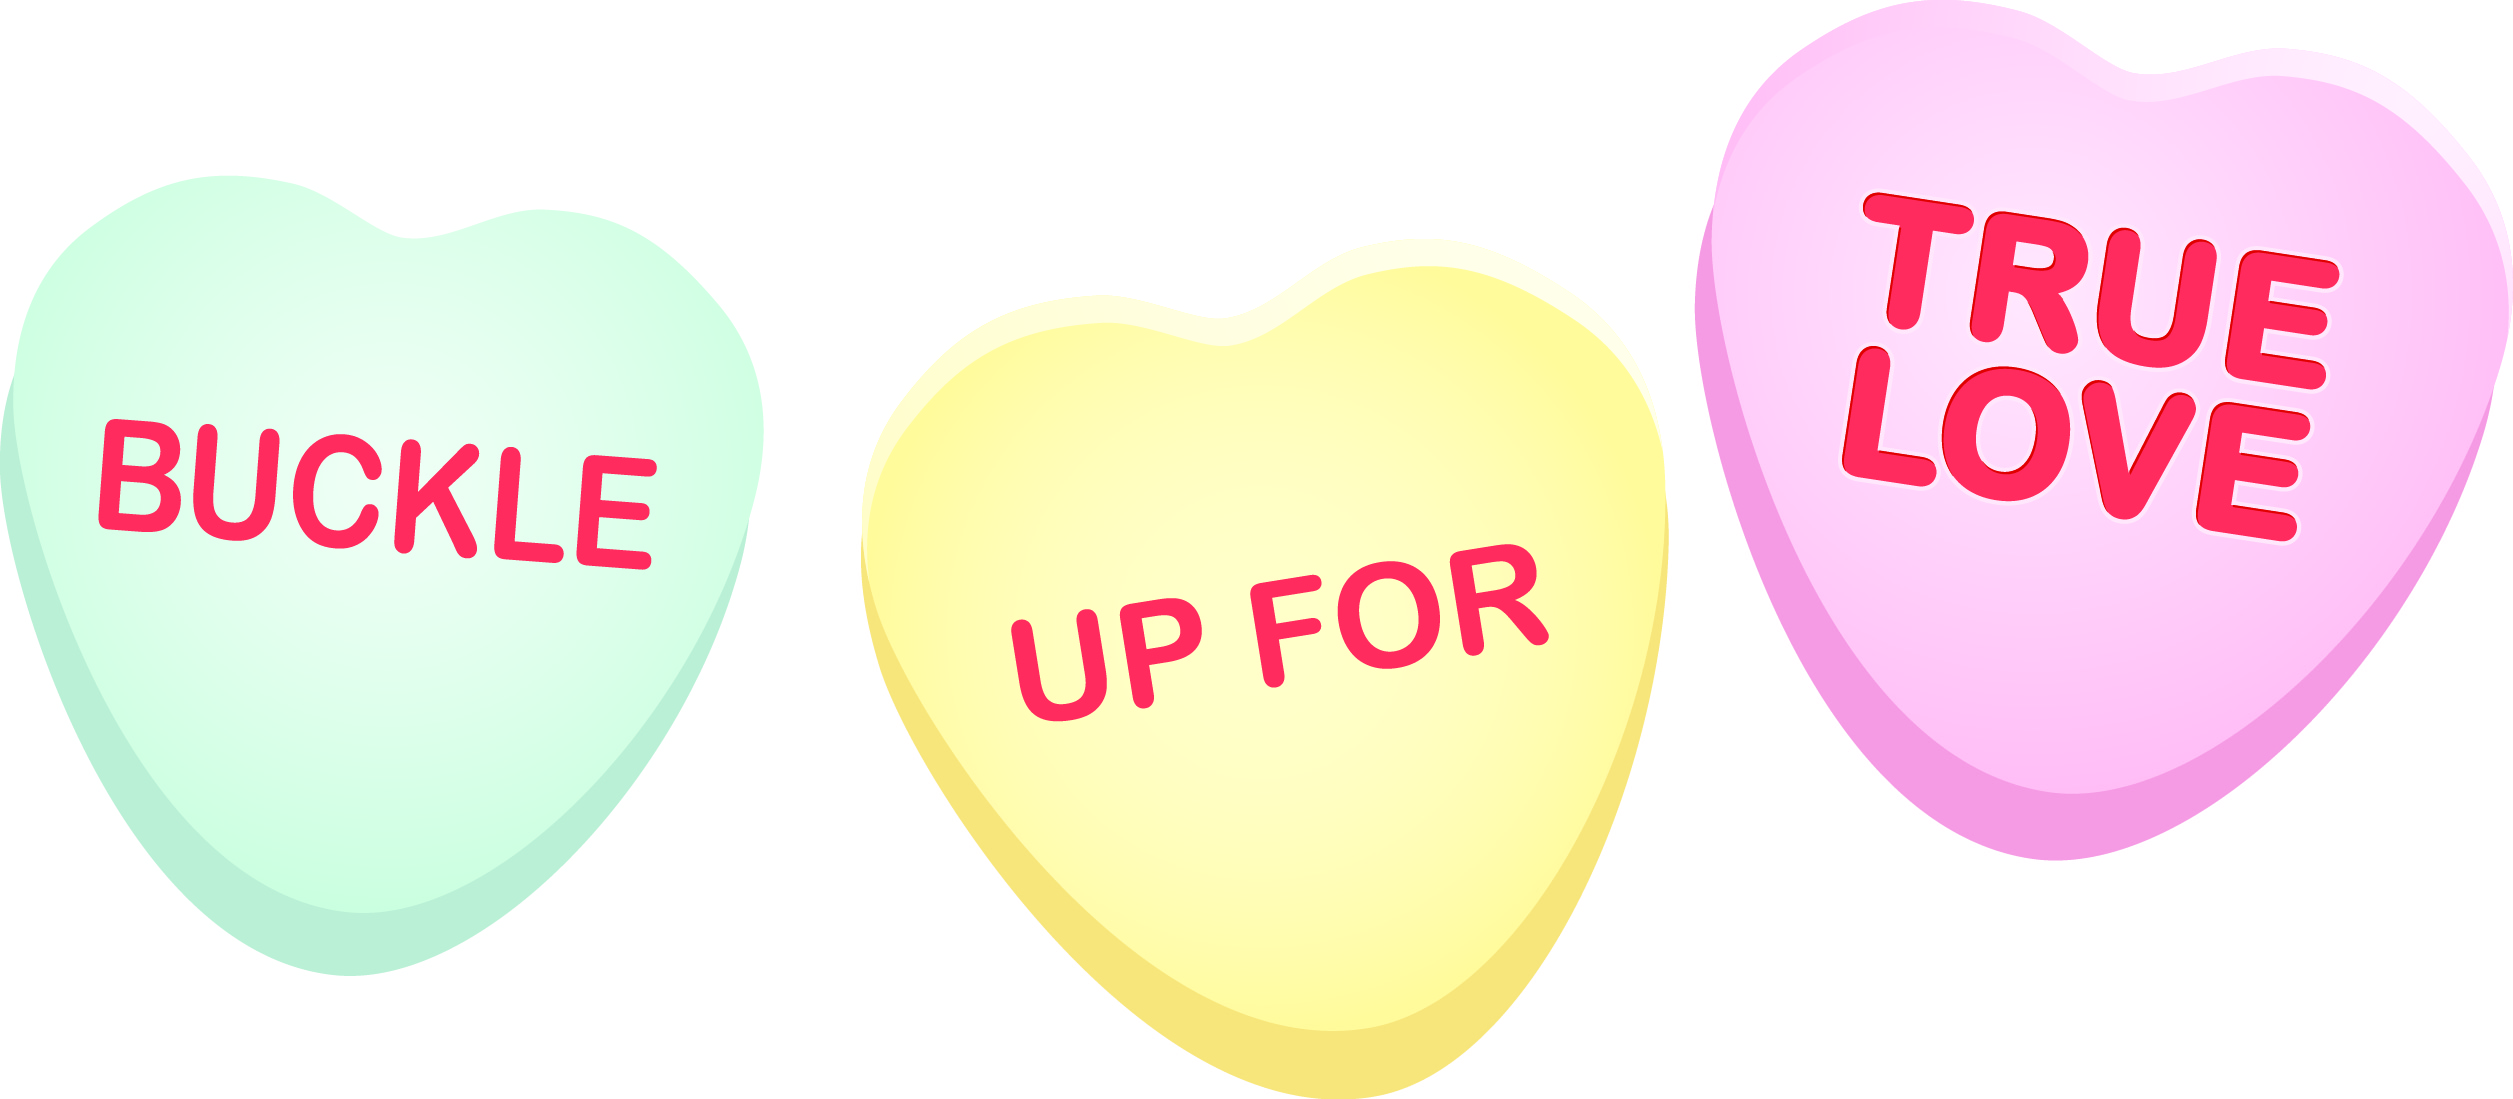 Candy Hearts Spell Out Buckle Up for True Love